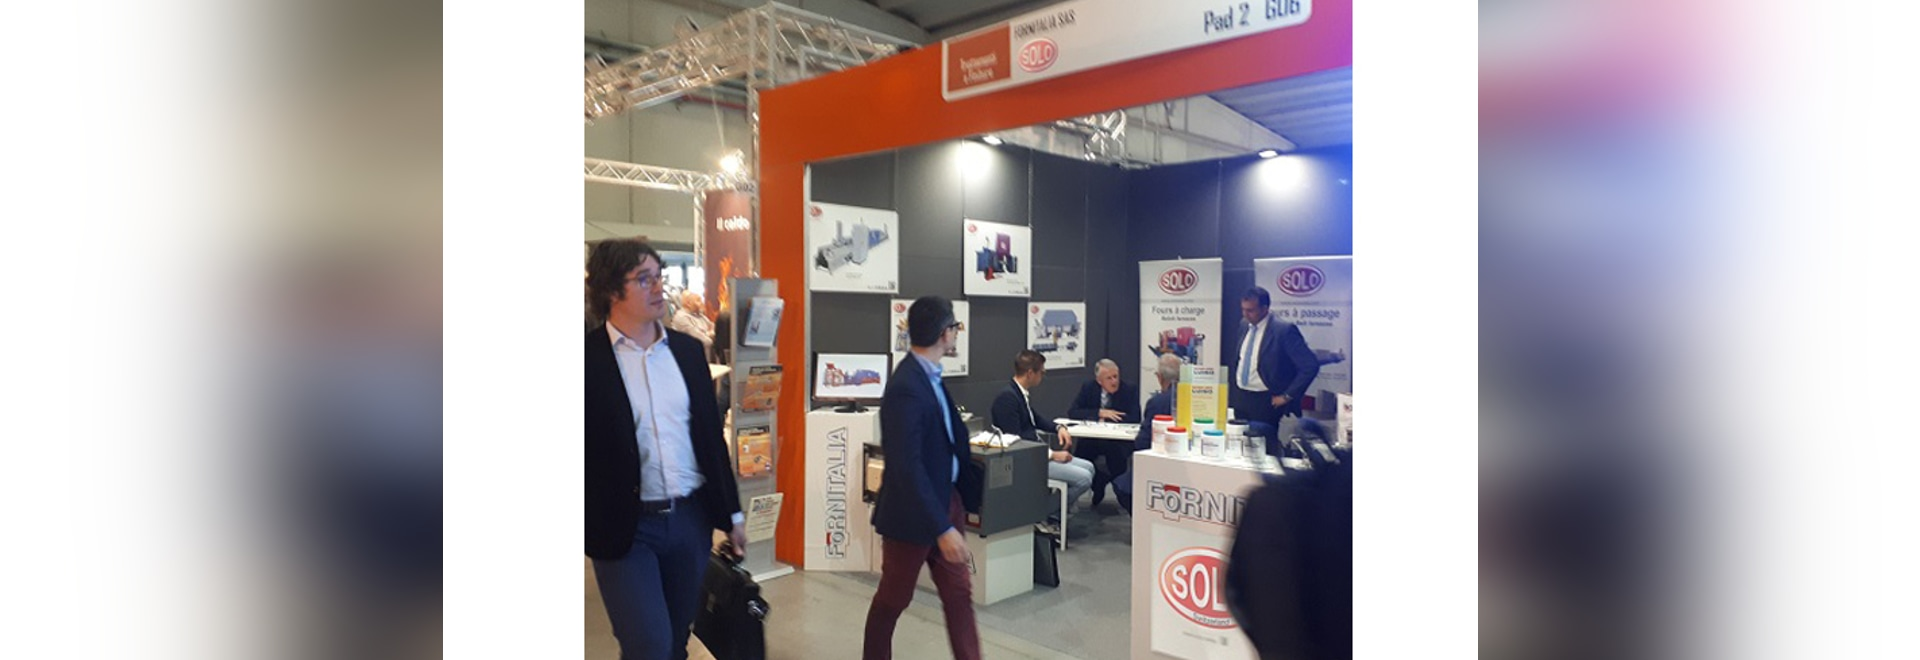 "SOLO Swiss participation at ""MECSPE 2019"" exhibition, 28-30 March, PARMA, Italy."